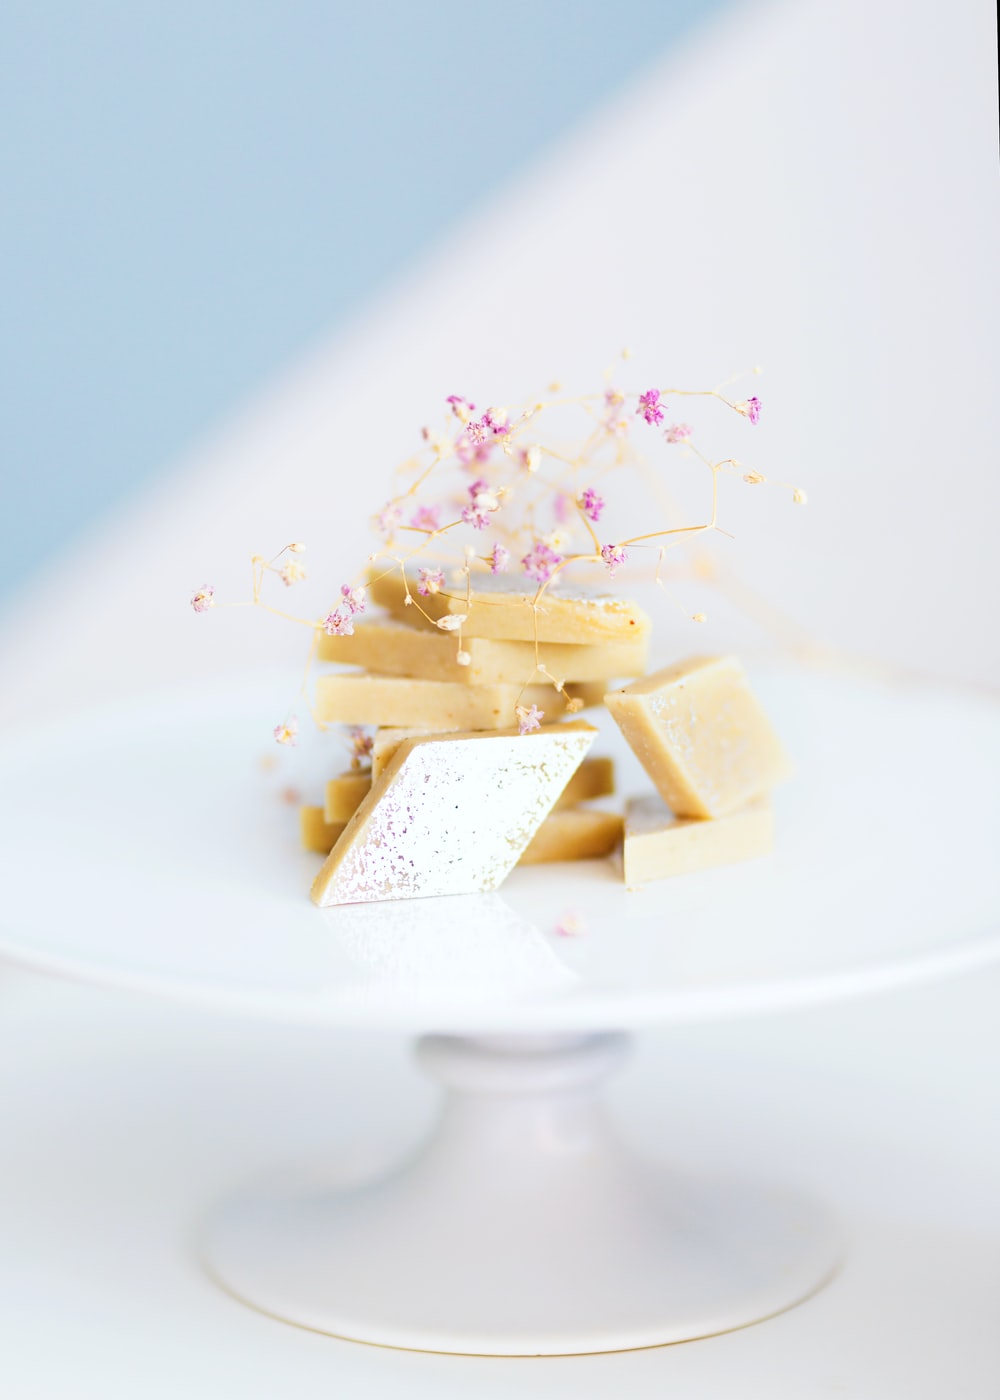 white and brown cake on white ceramic plate